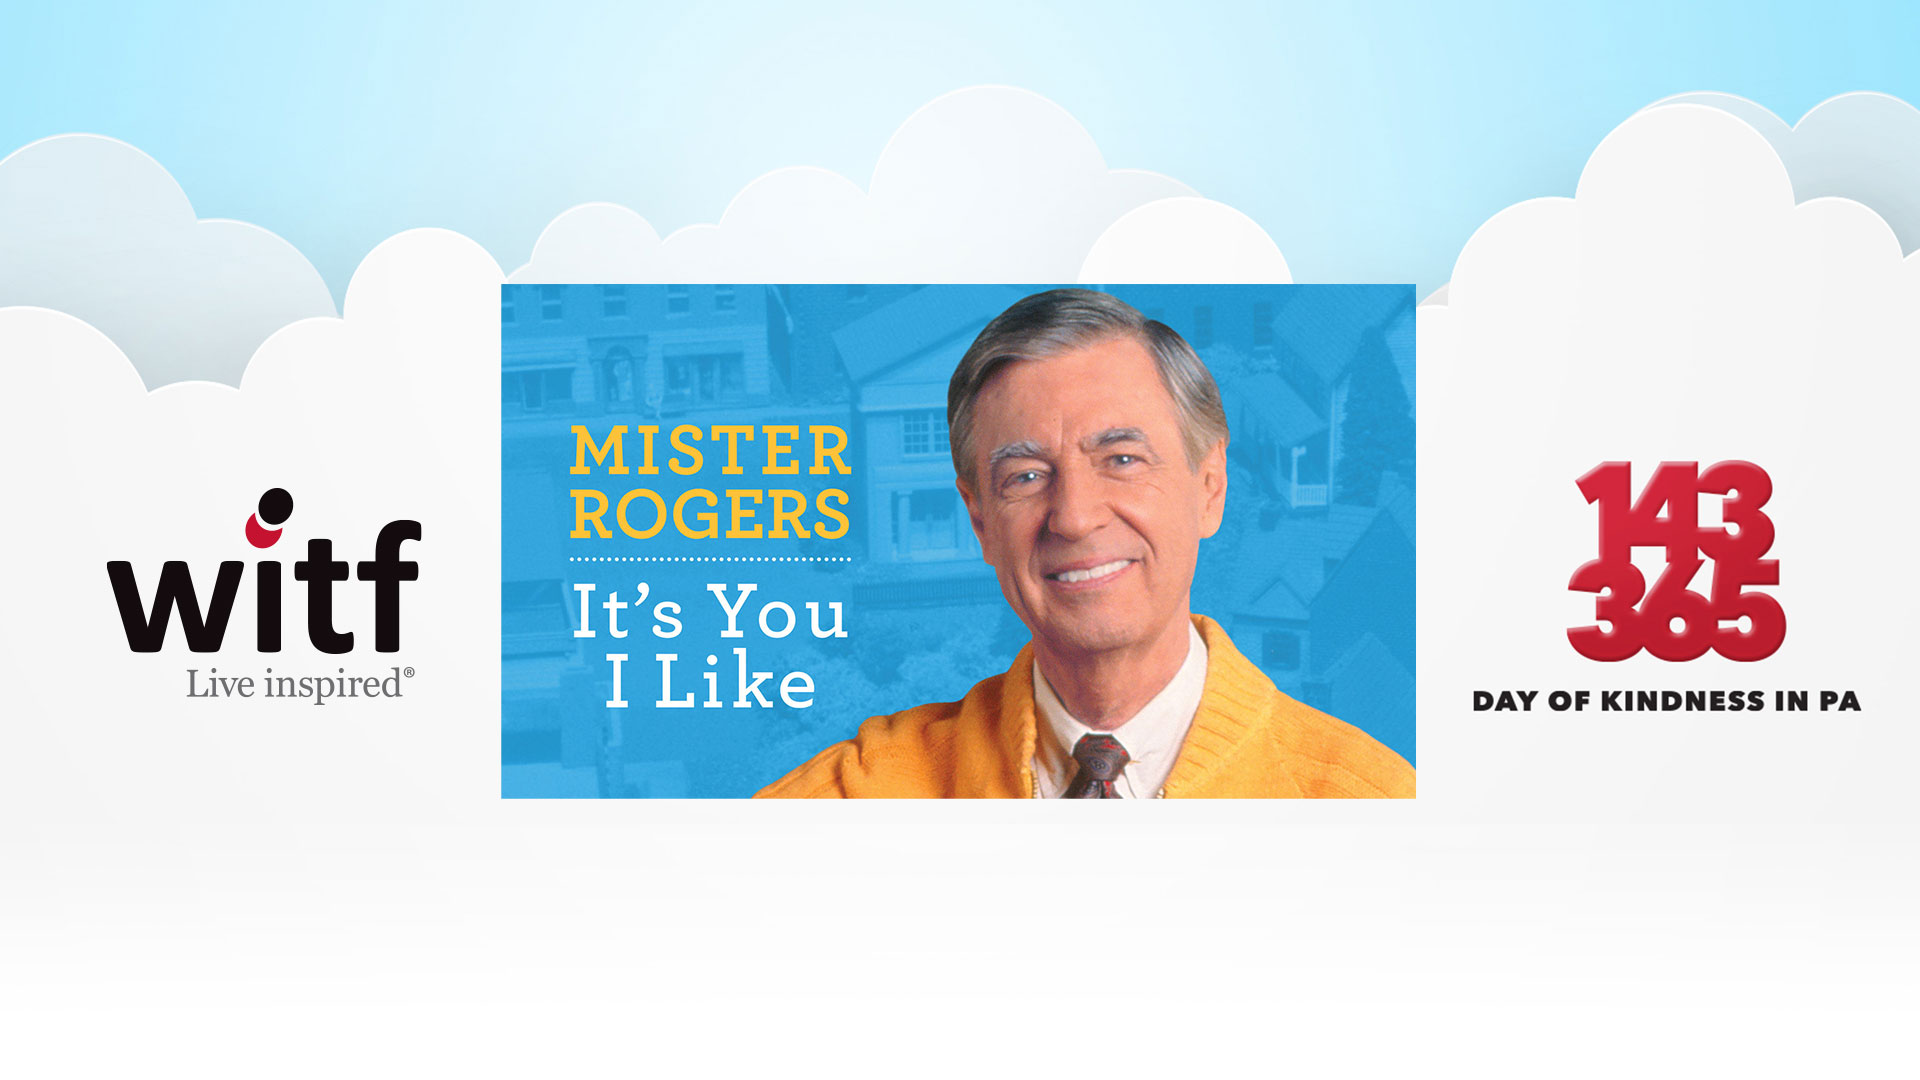 Mister Rogers It S You I Like Screening Celebrates 143 Day Witf